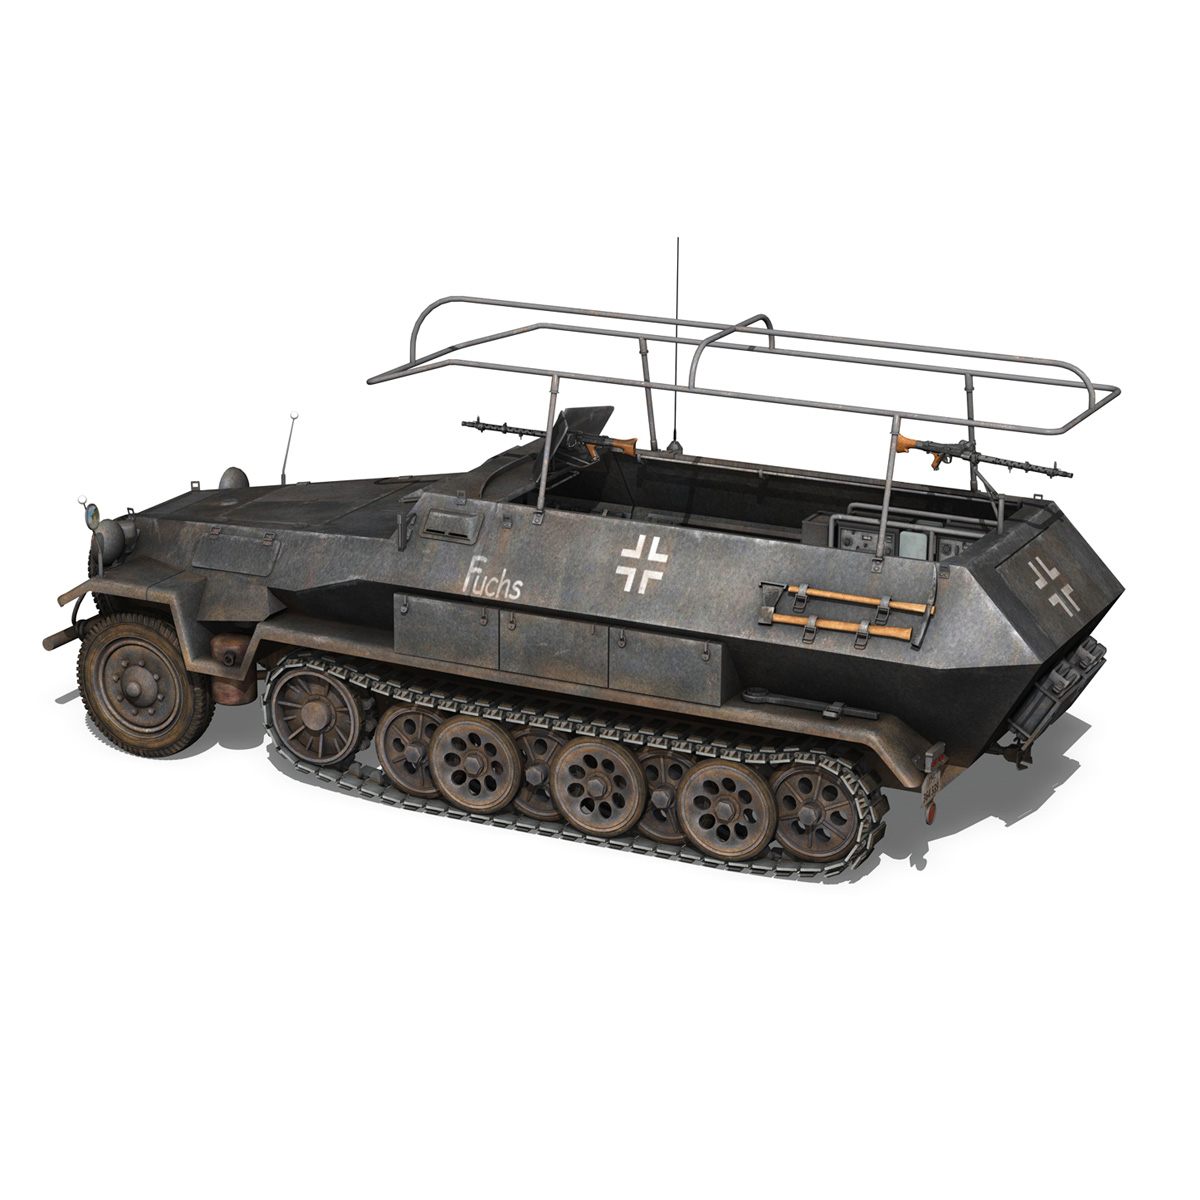 sd.kfz 251 ausf b – communications vehicle – 8pd 3d model 3ds fbx lwo lw lws obj c4d 292027